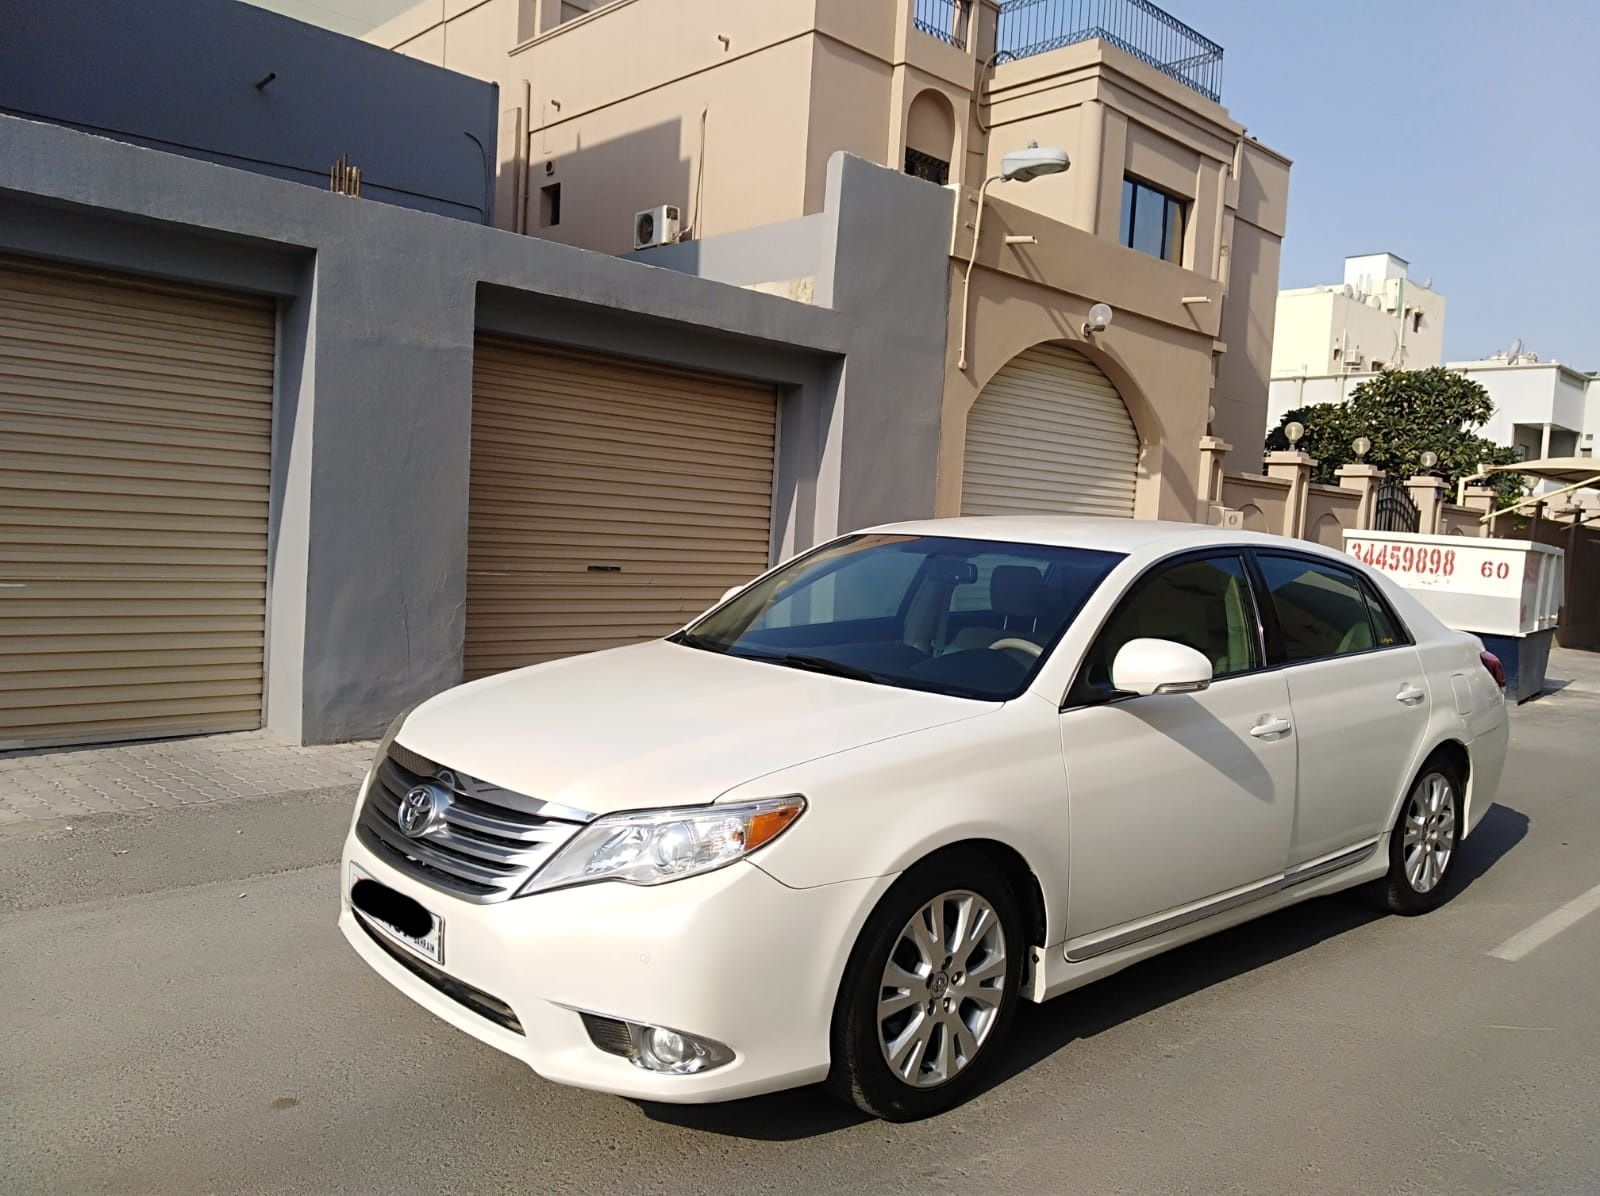 Toyota Avalon 2011 (White)